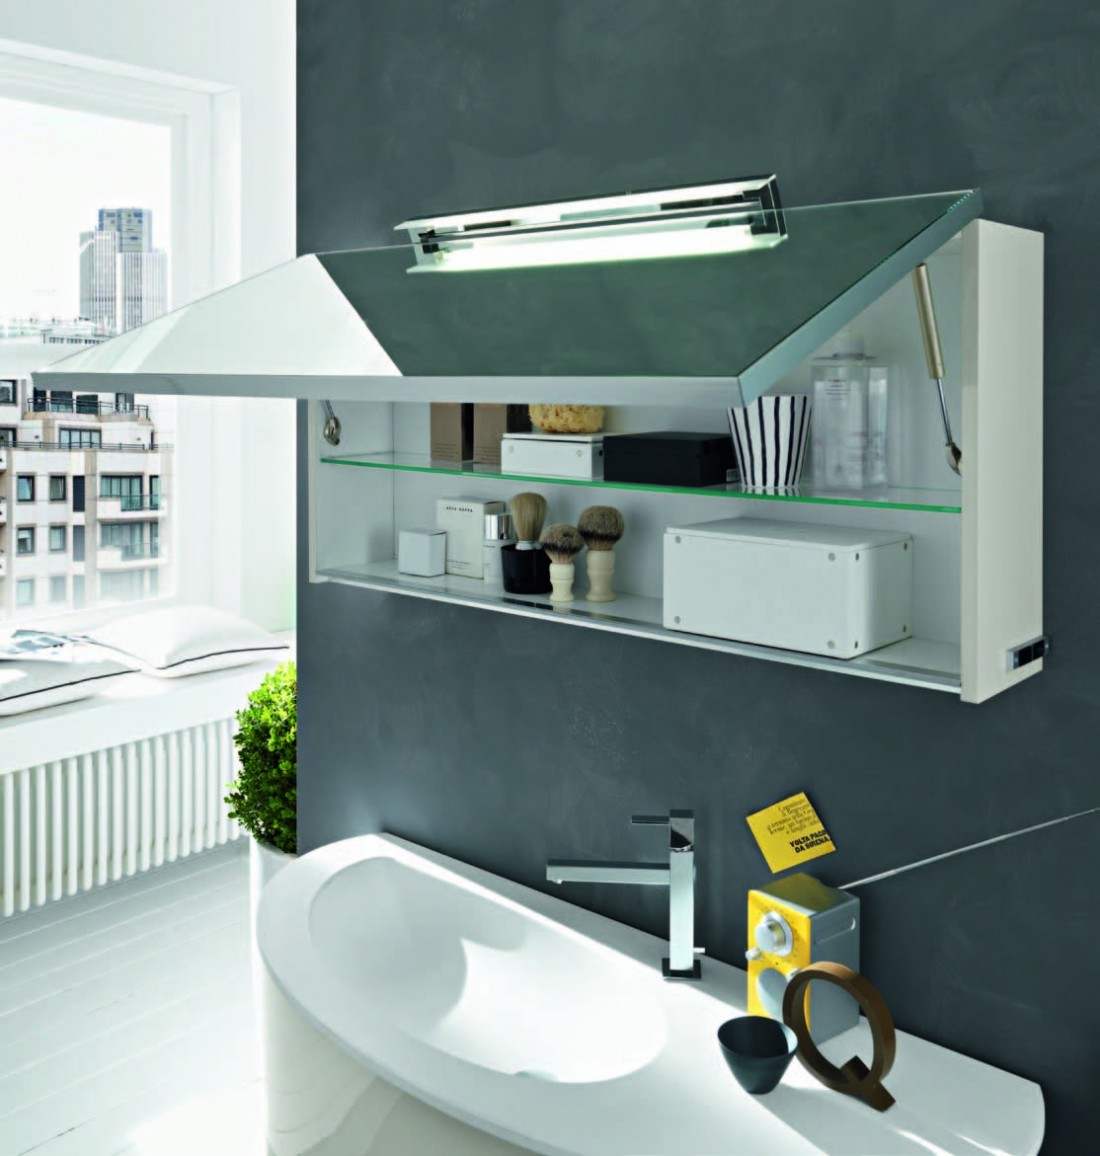 Mobile bagno design ovale base lavabo sospesa specchio for Mobiletto design